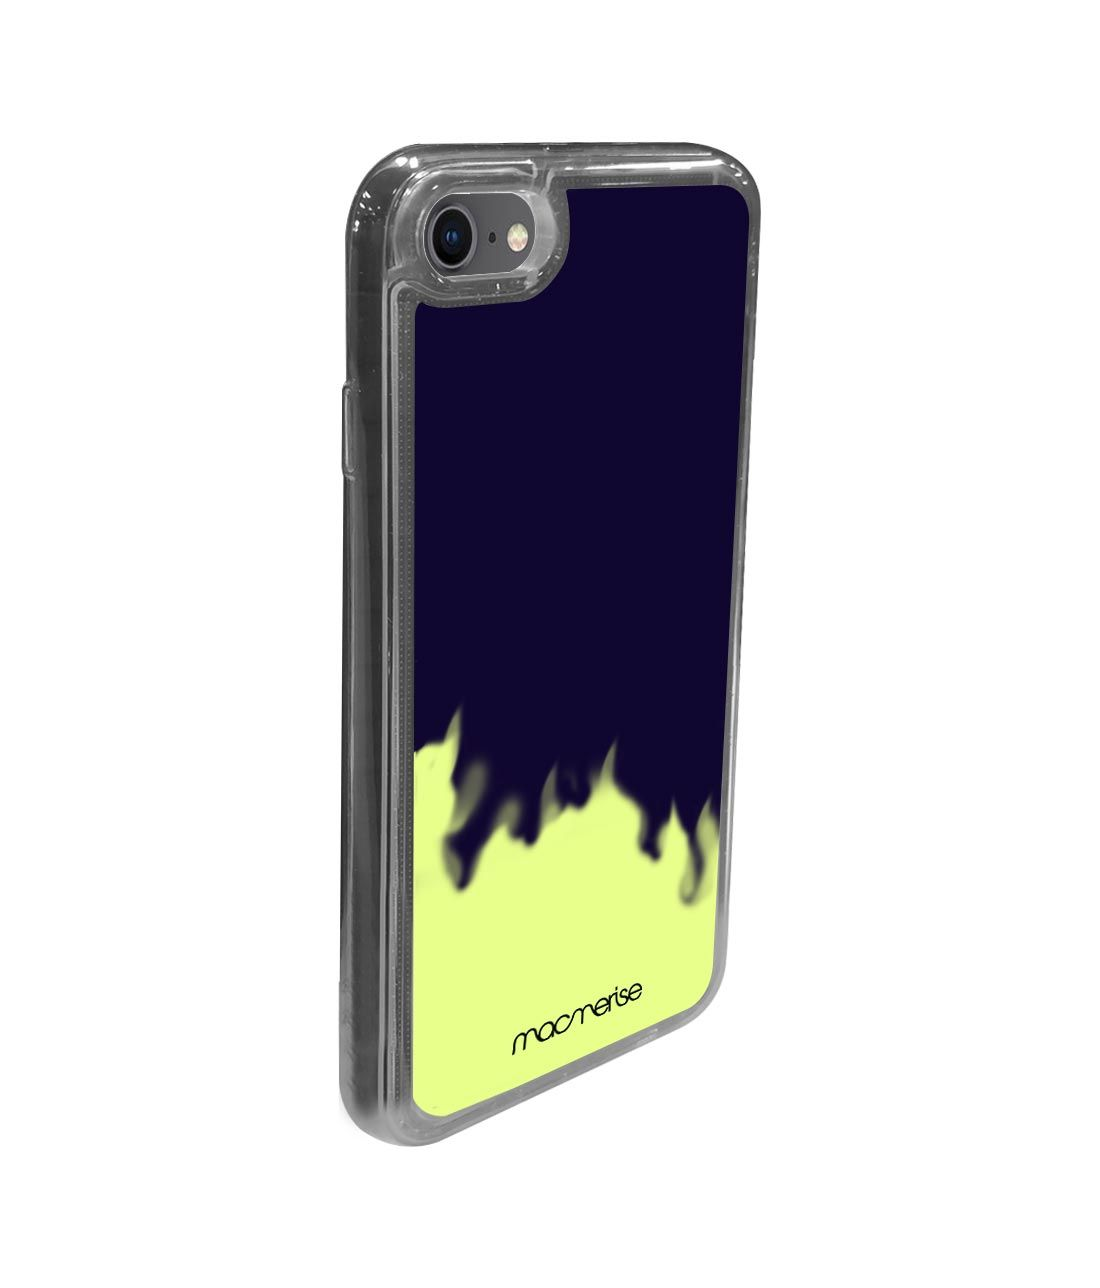 Neon Sand Blue - Neon Sand Phone Case for iPhone SE (2020)